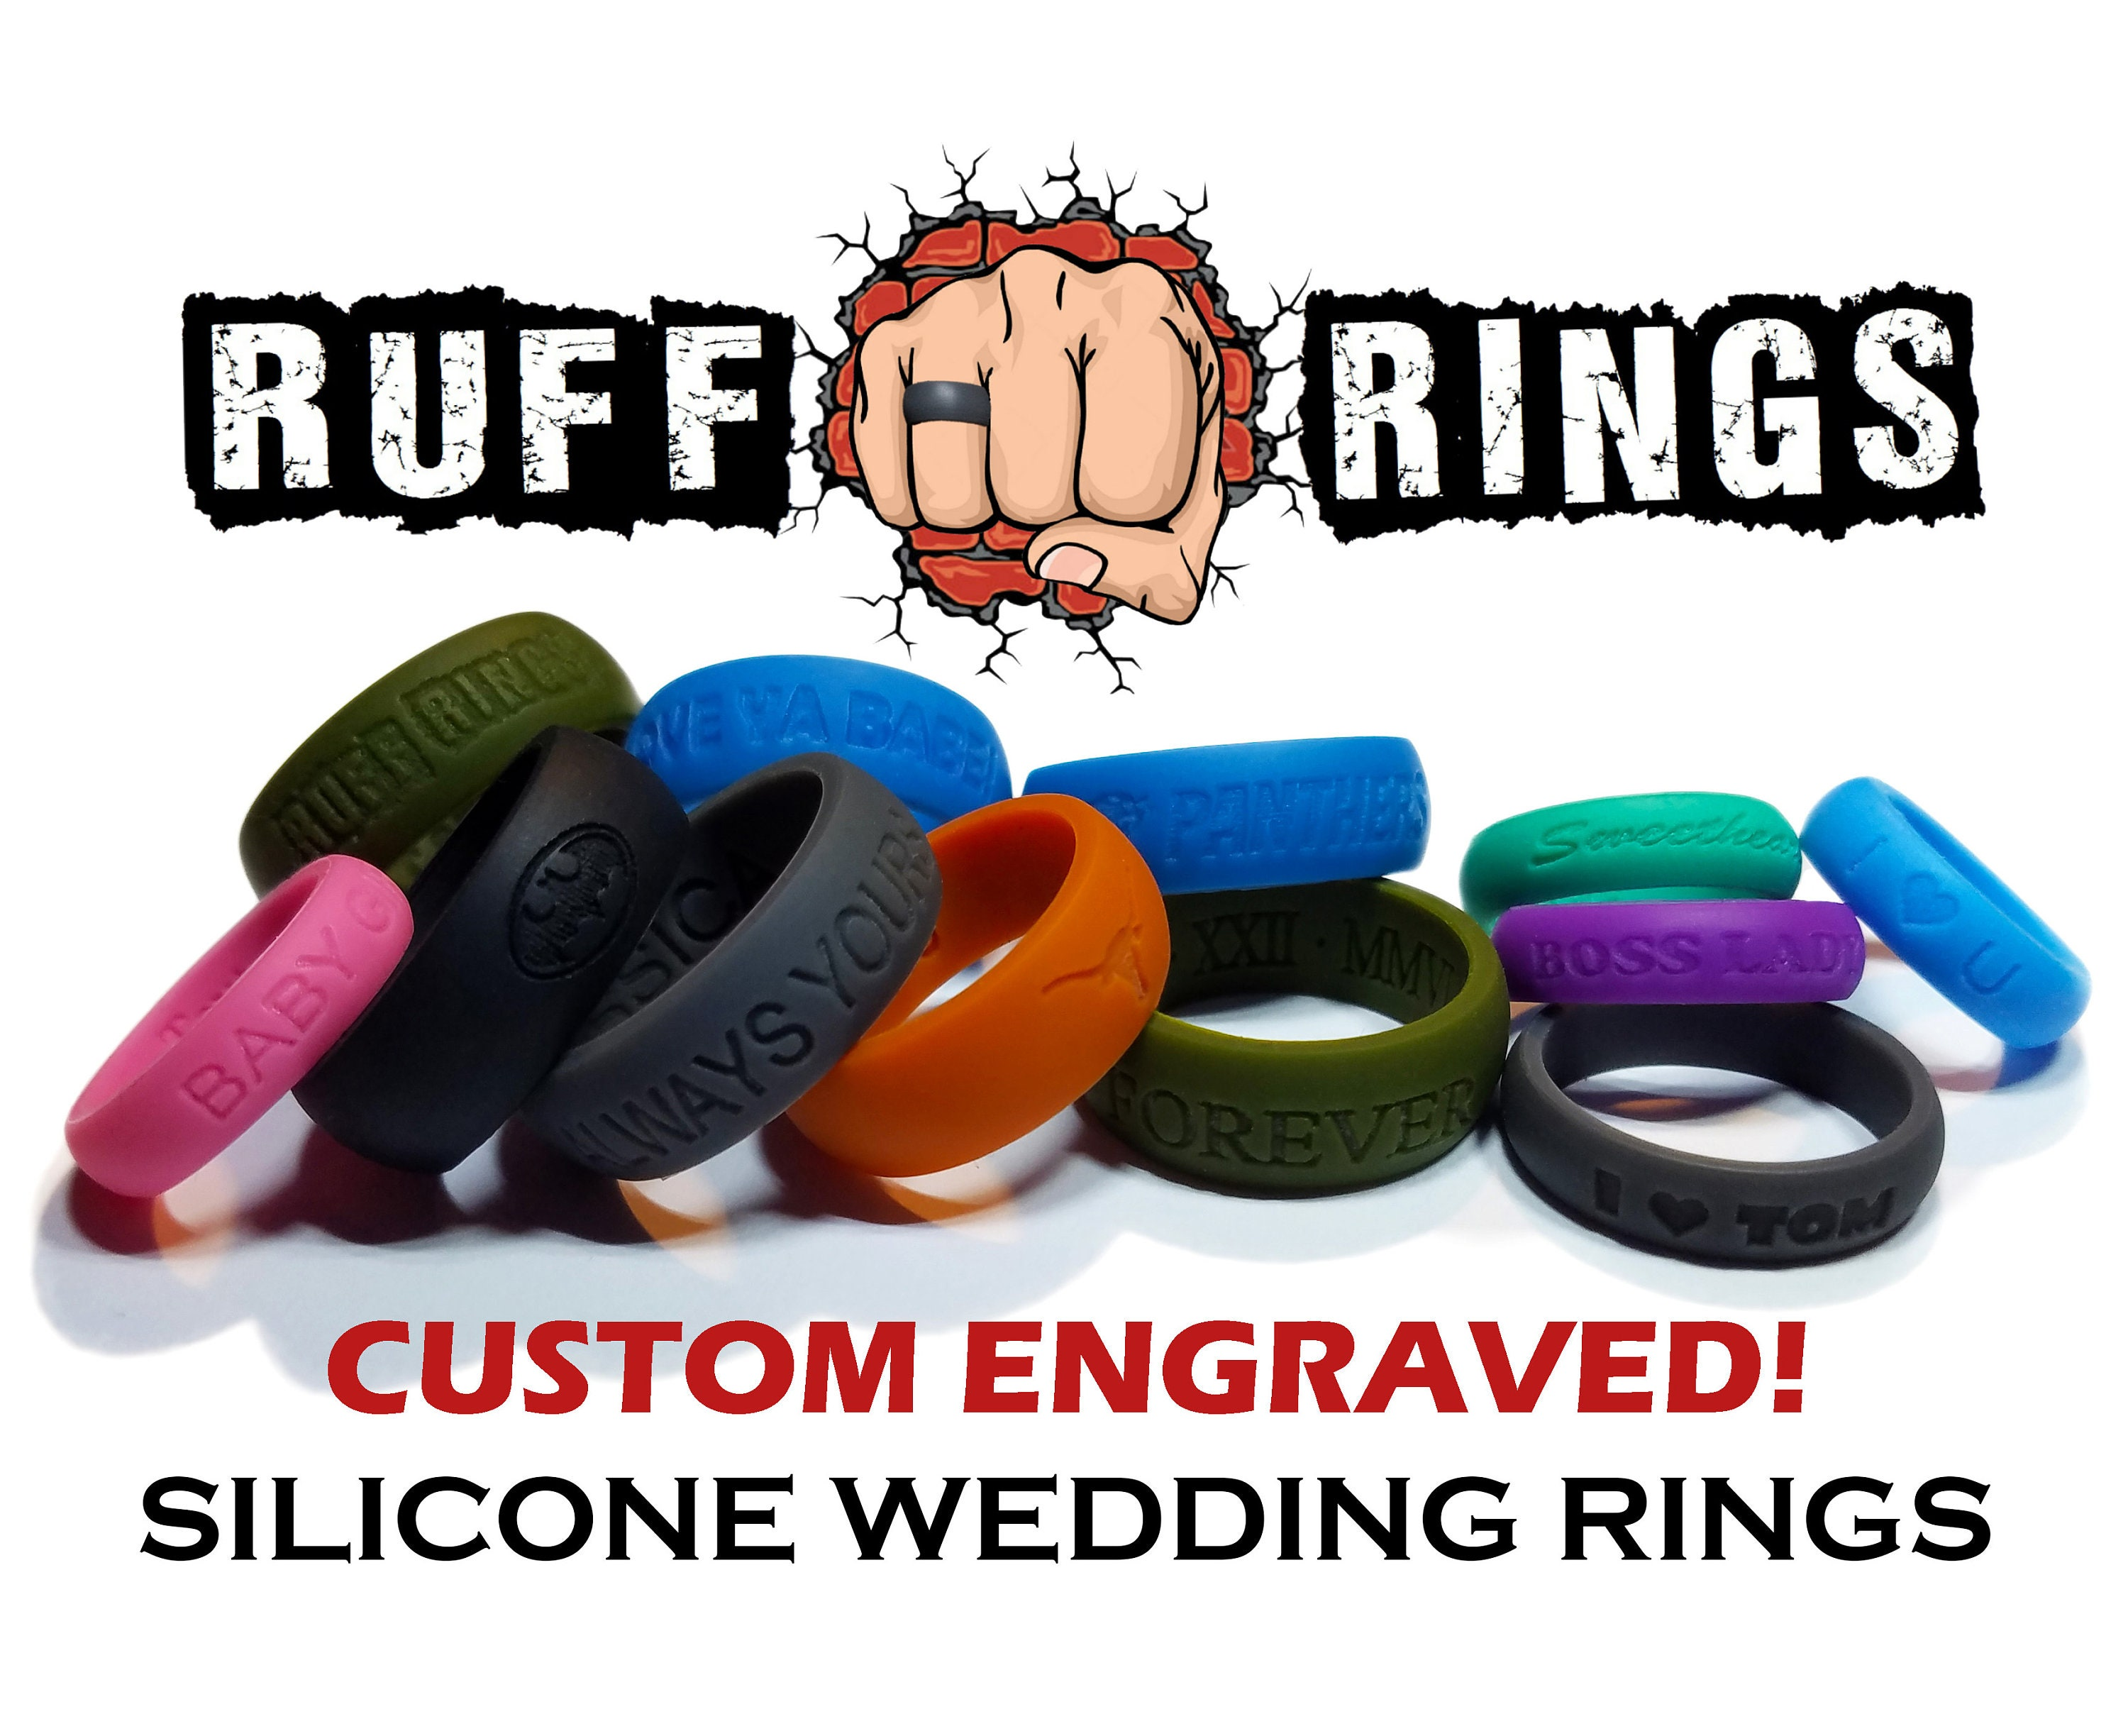 Silicone Ring Custom Engraved Personalized Name Date Phrase